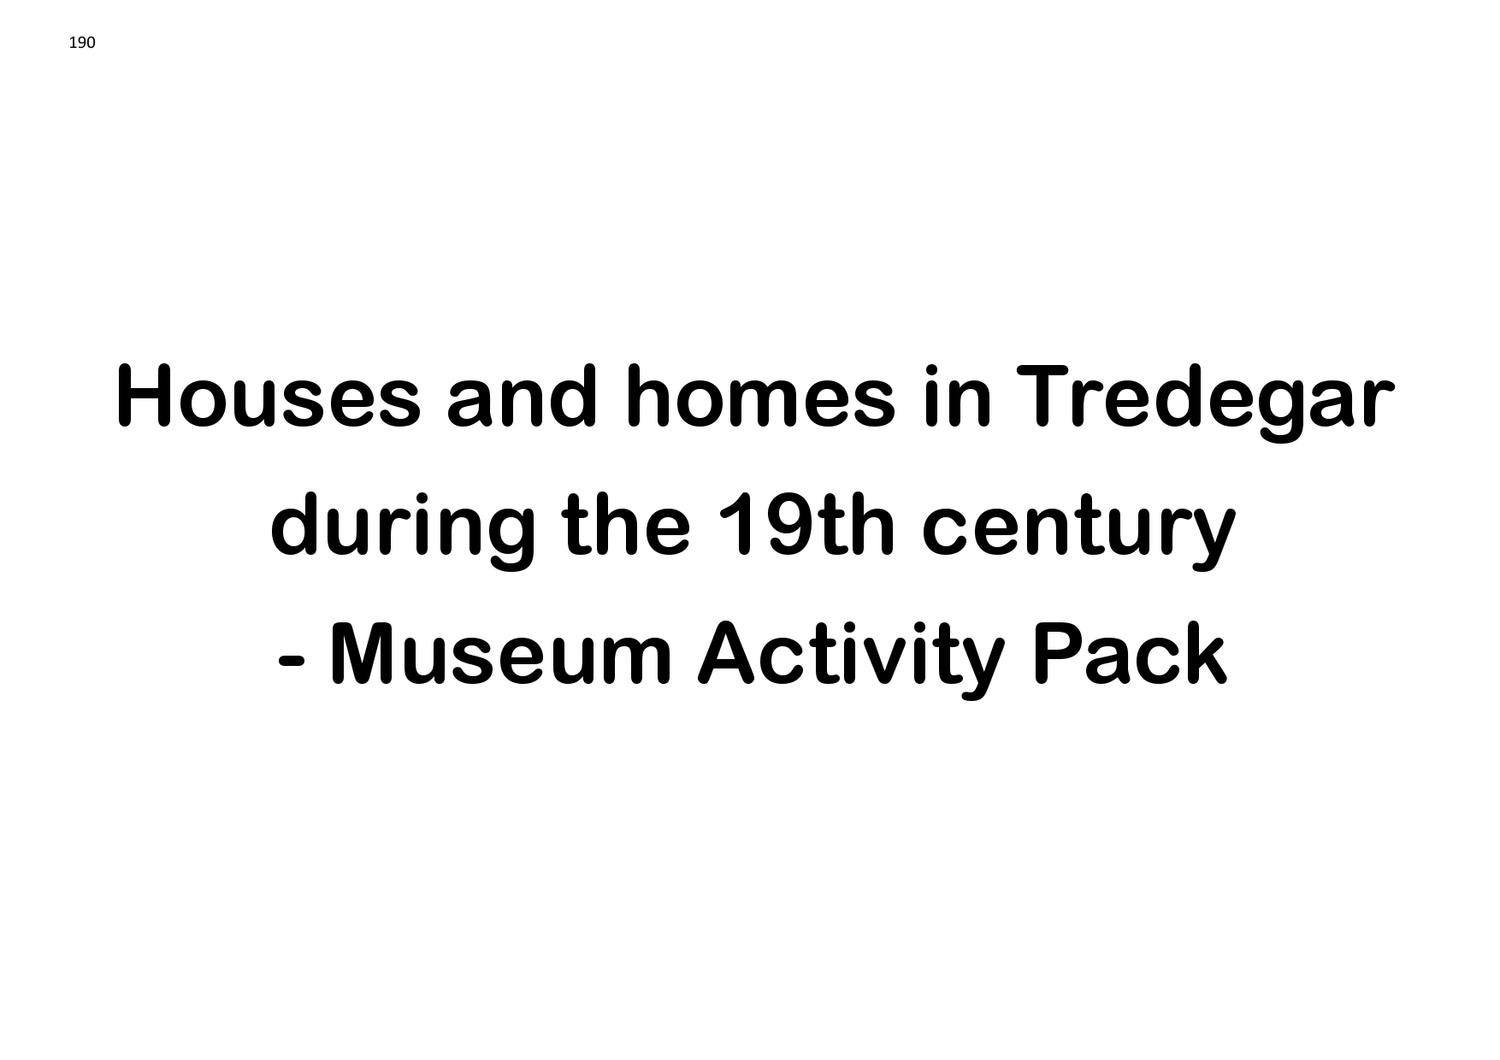 Houses & homes in Tredegar Museum Activity Pack Part 10 by